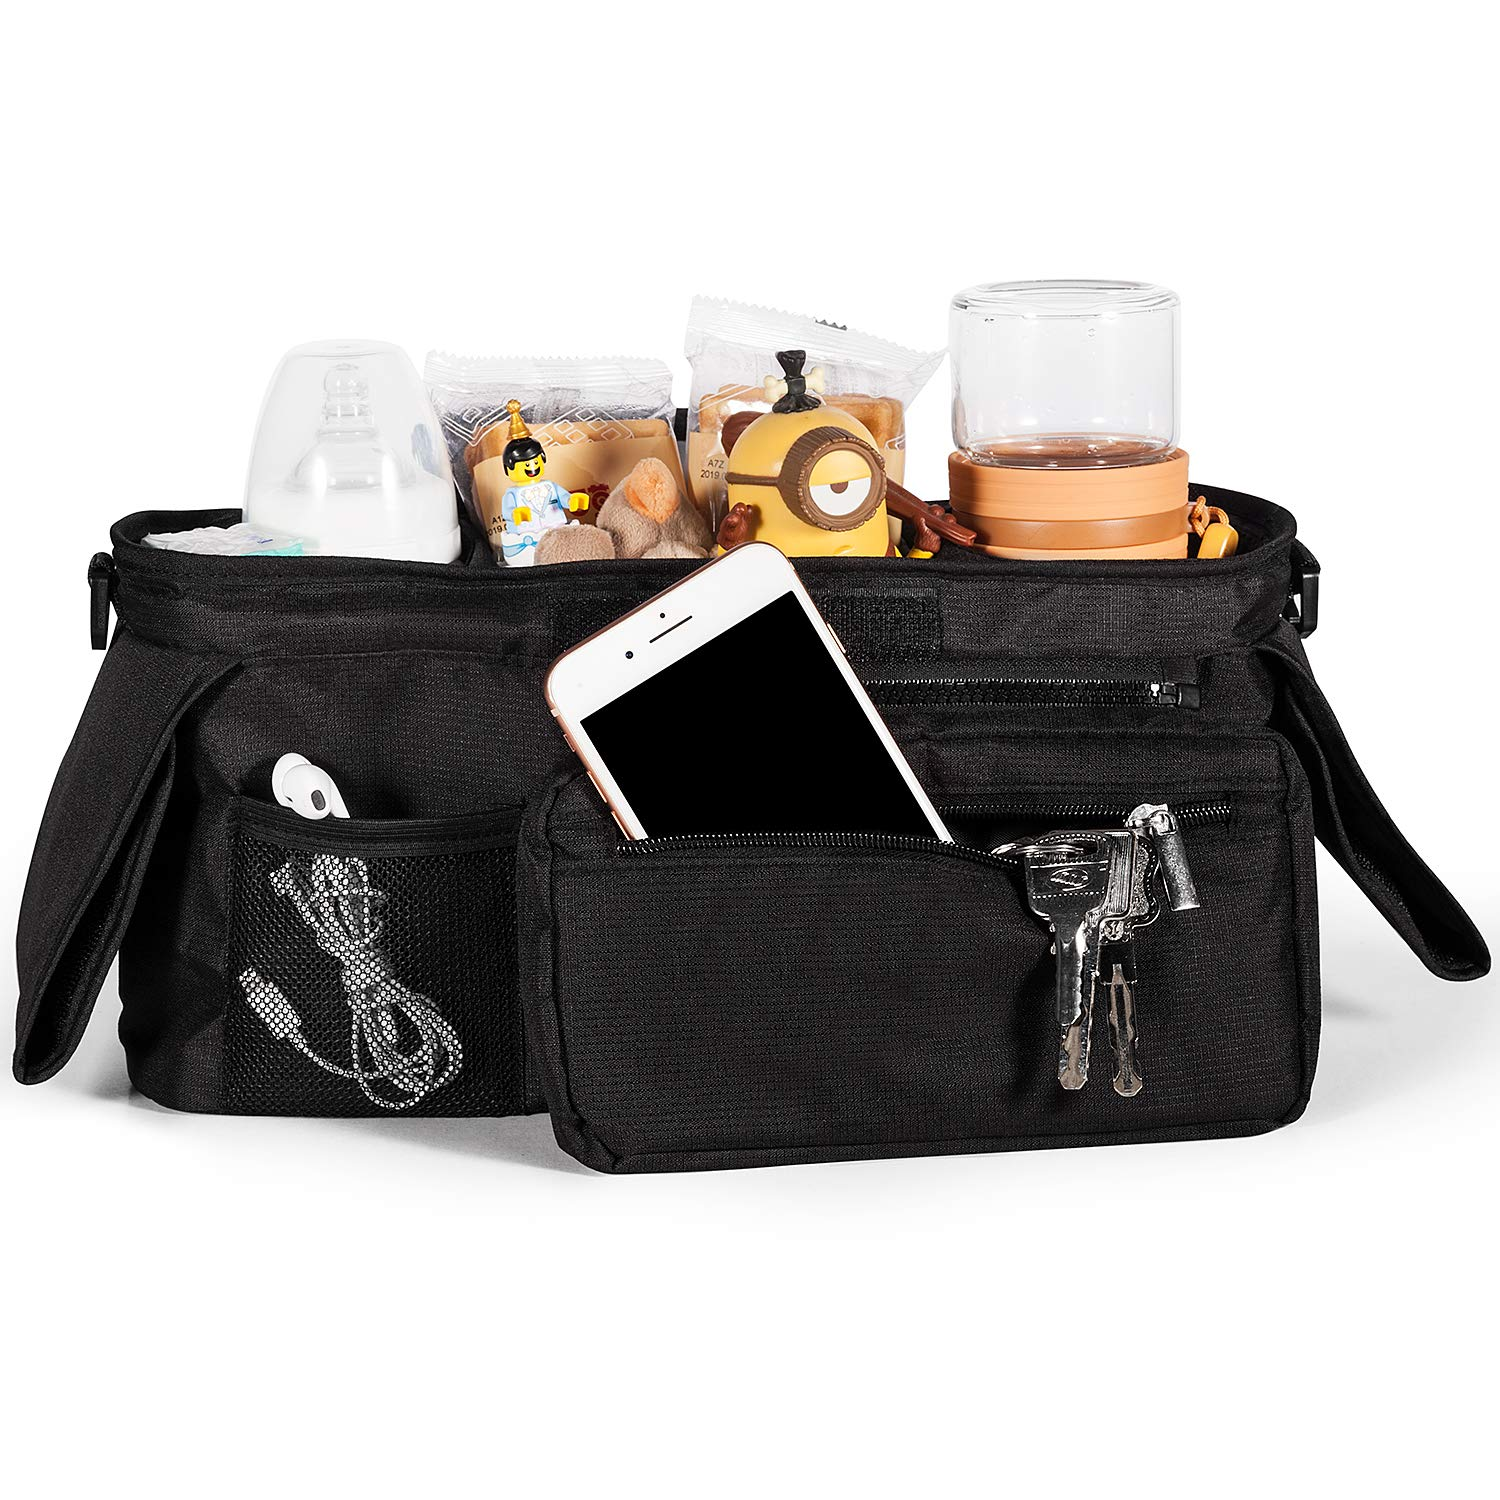 Universal Stroller Organizer with 2 Insulated Cup Holders, Lupantte Stroller Accessories, for Carrying Diaper, iPhone, Toys & Snacks, Fits Britax, Uppababy, Baby Jogger, Bugaboo and BOB Stroller. by Lupantte (Image #2)